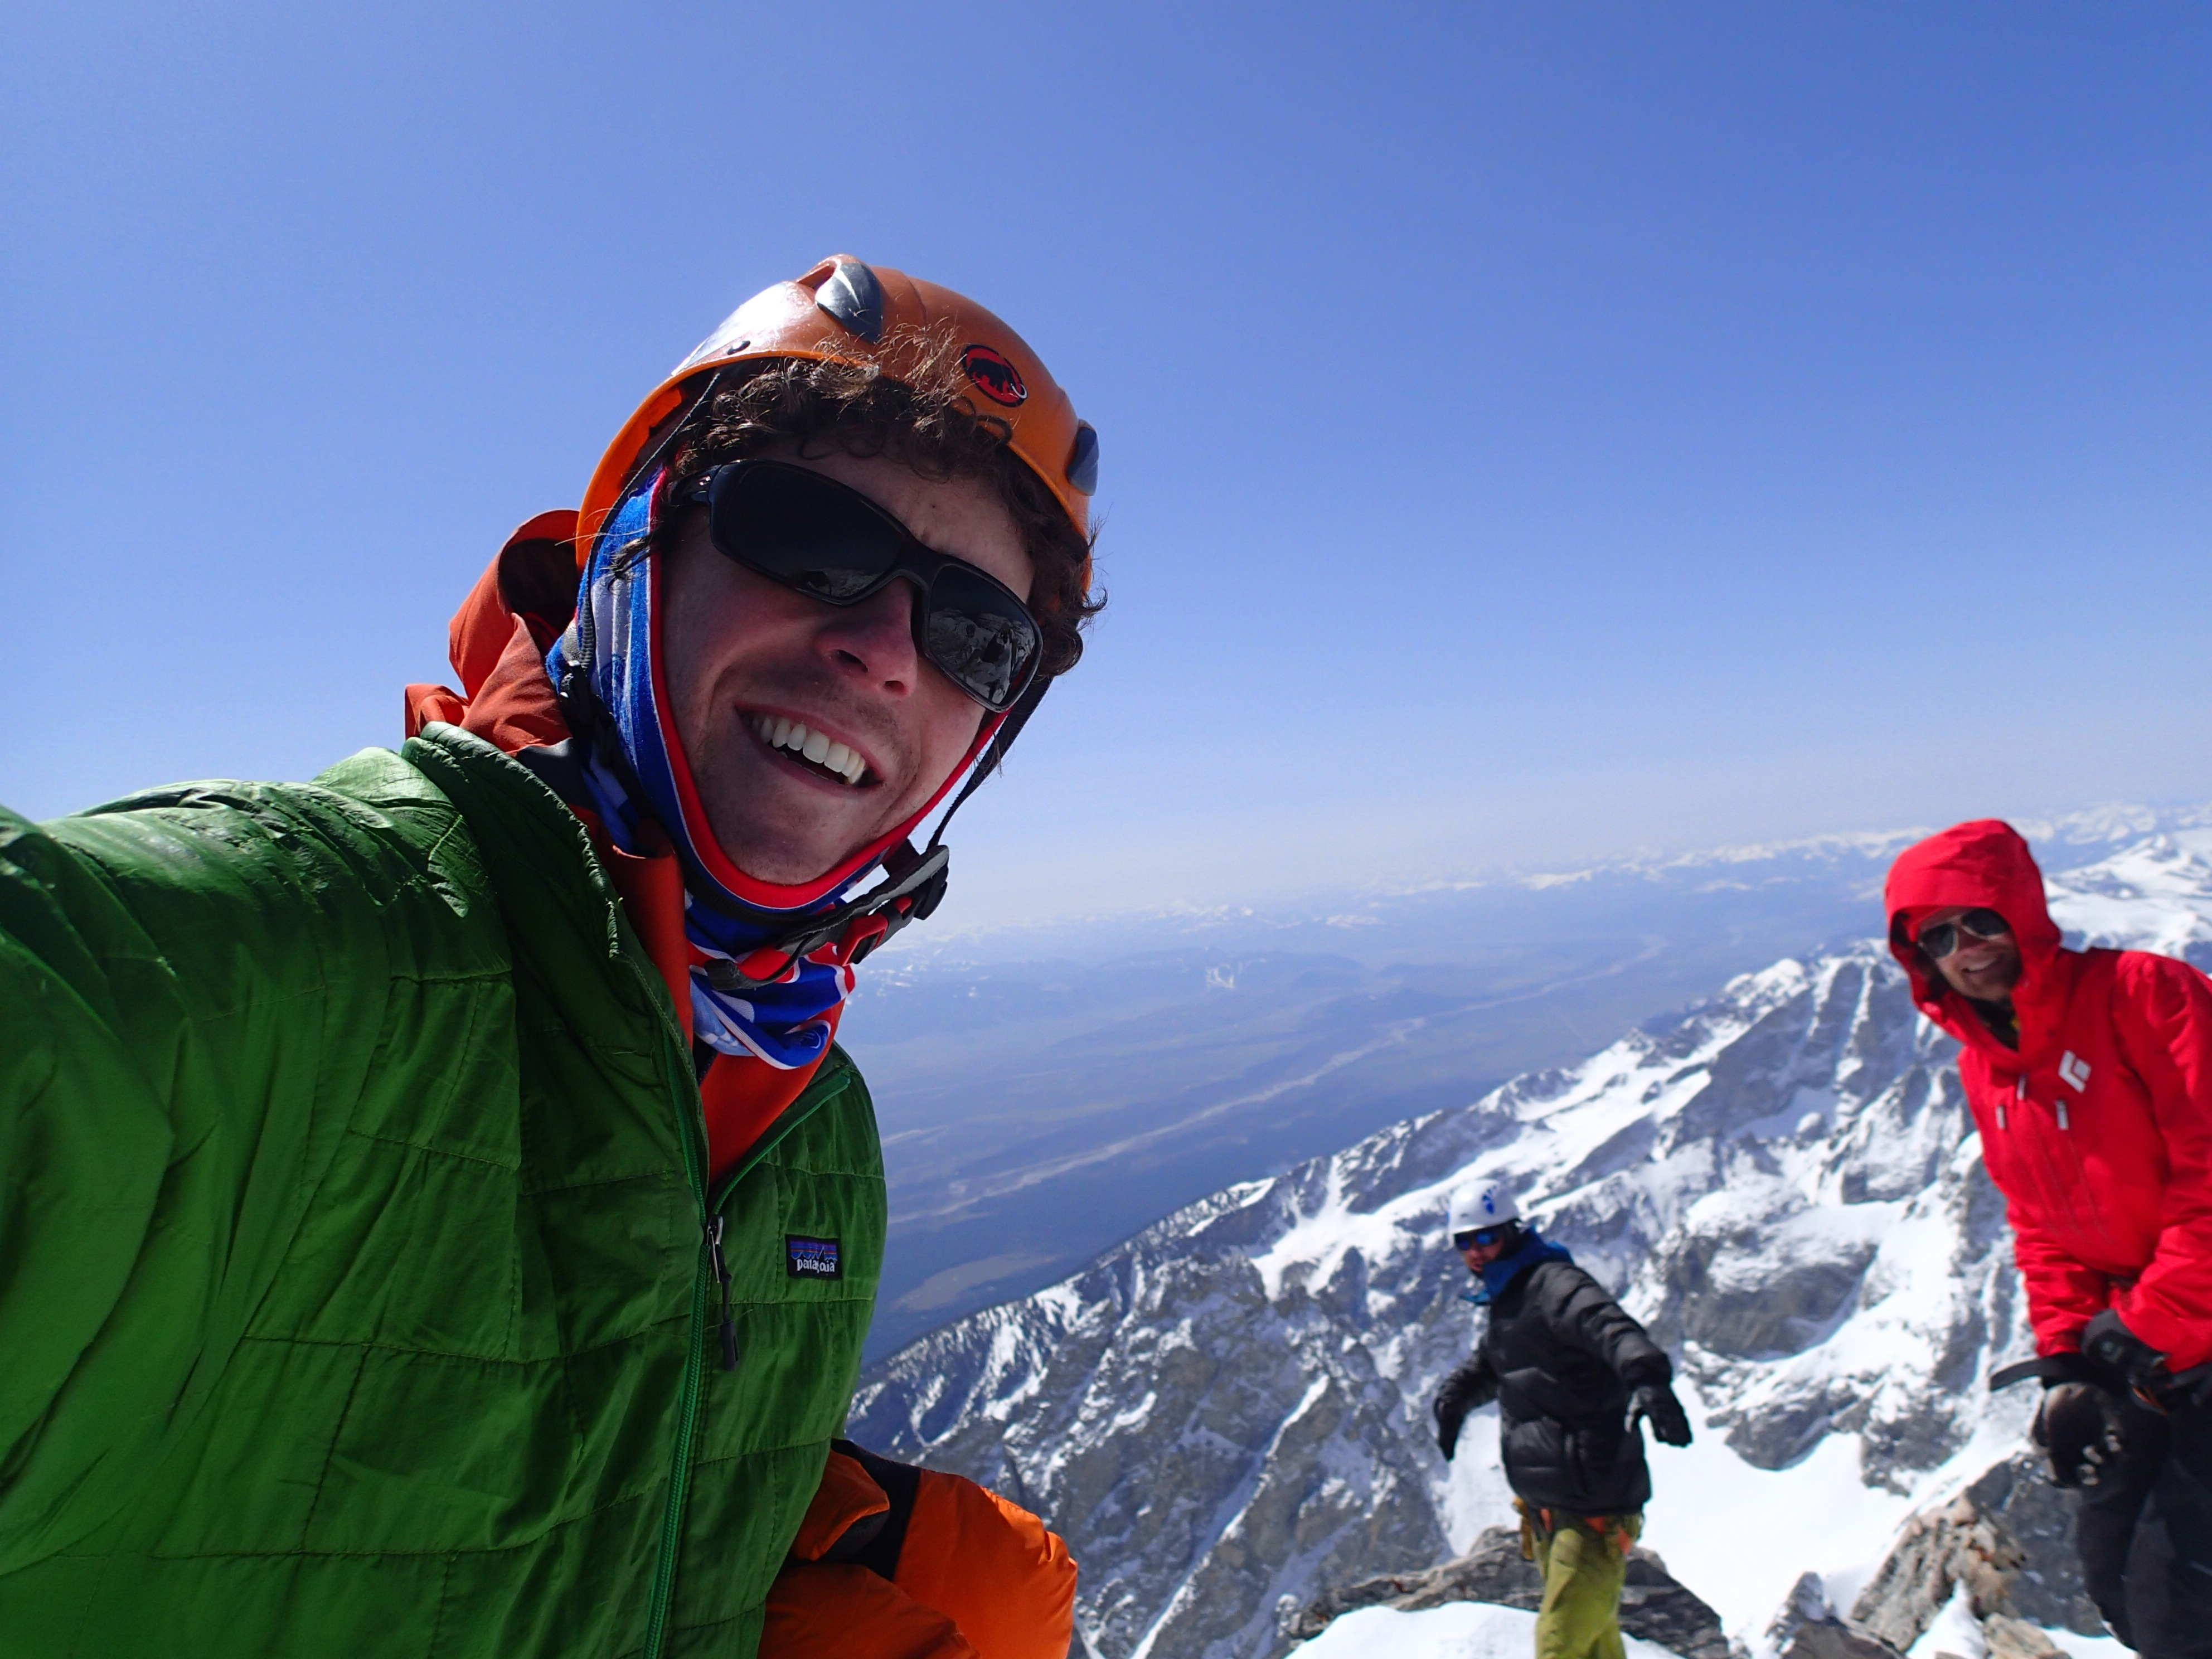 Selfie from the Grand Teton summit in winter